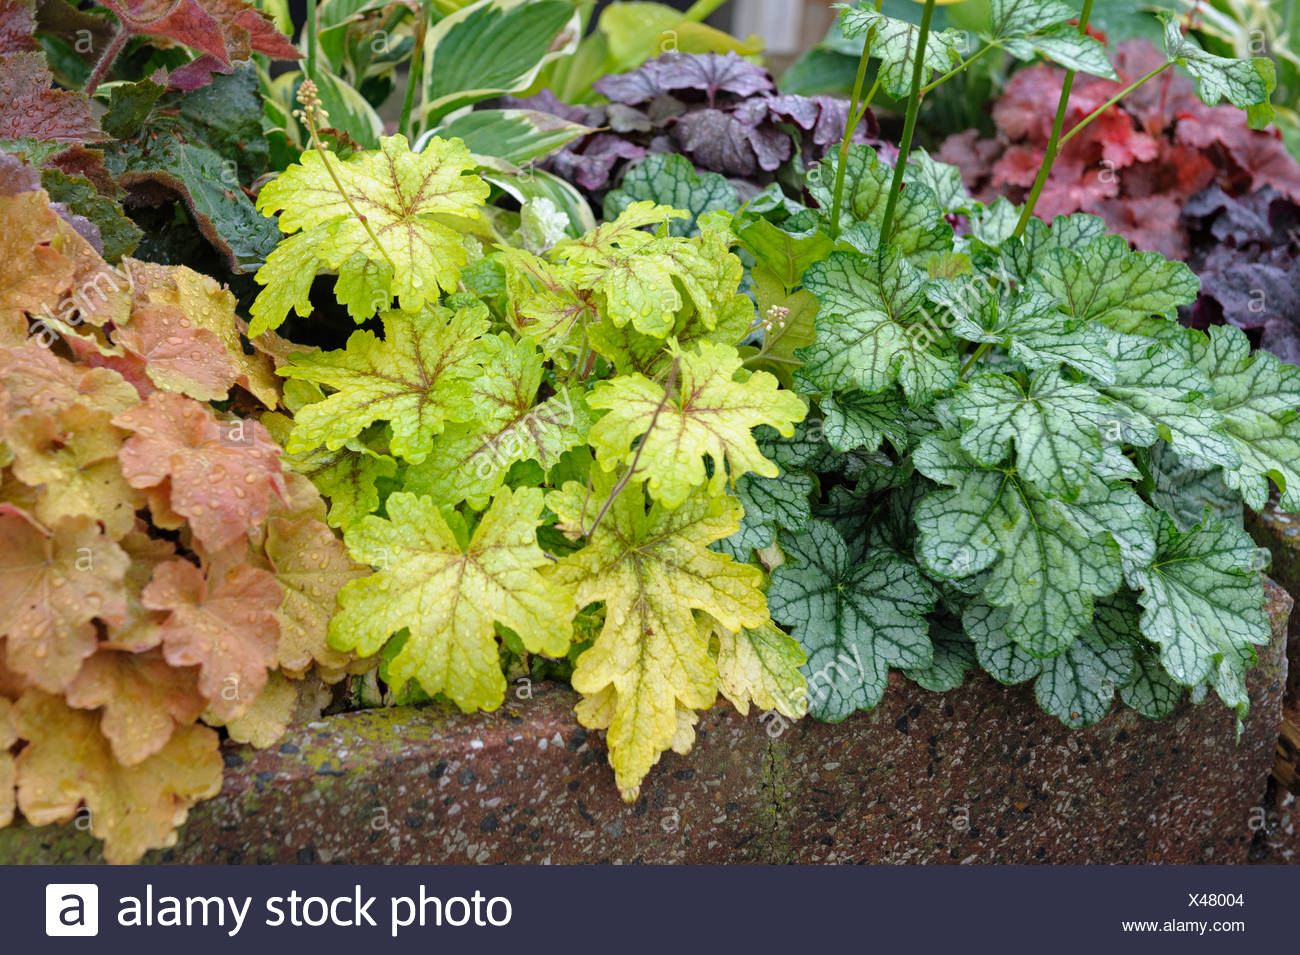 Heucherella (Heucherella spec.), cultivars Alabama Sunrise, Green Spice, Caramel - Stock Image